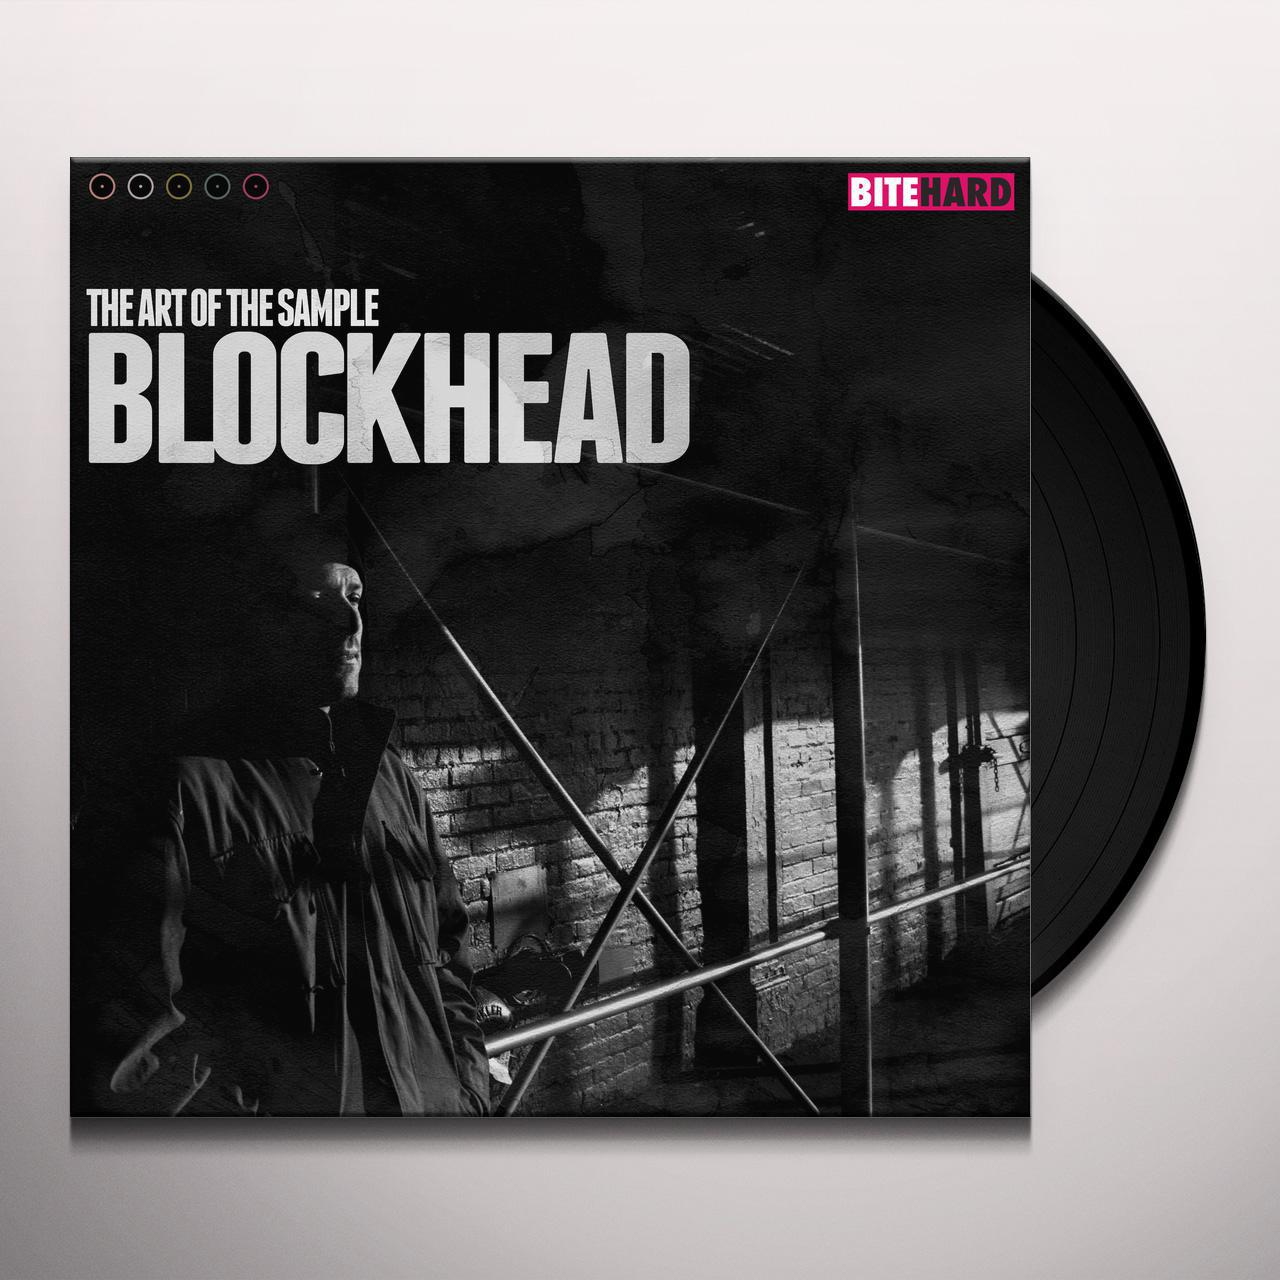 Blockhead ART OF THE SAMPLE Vinyl Record